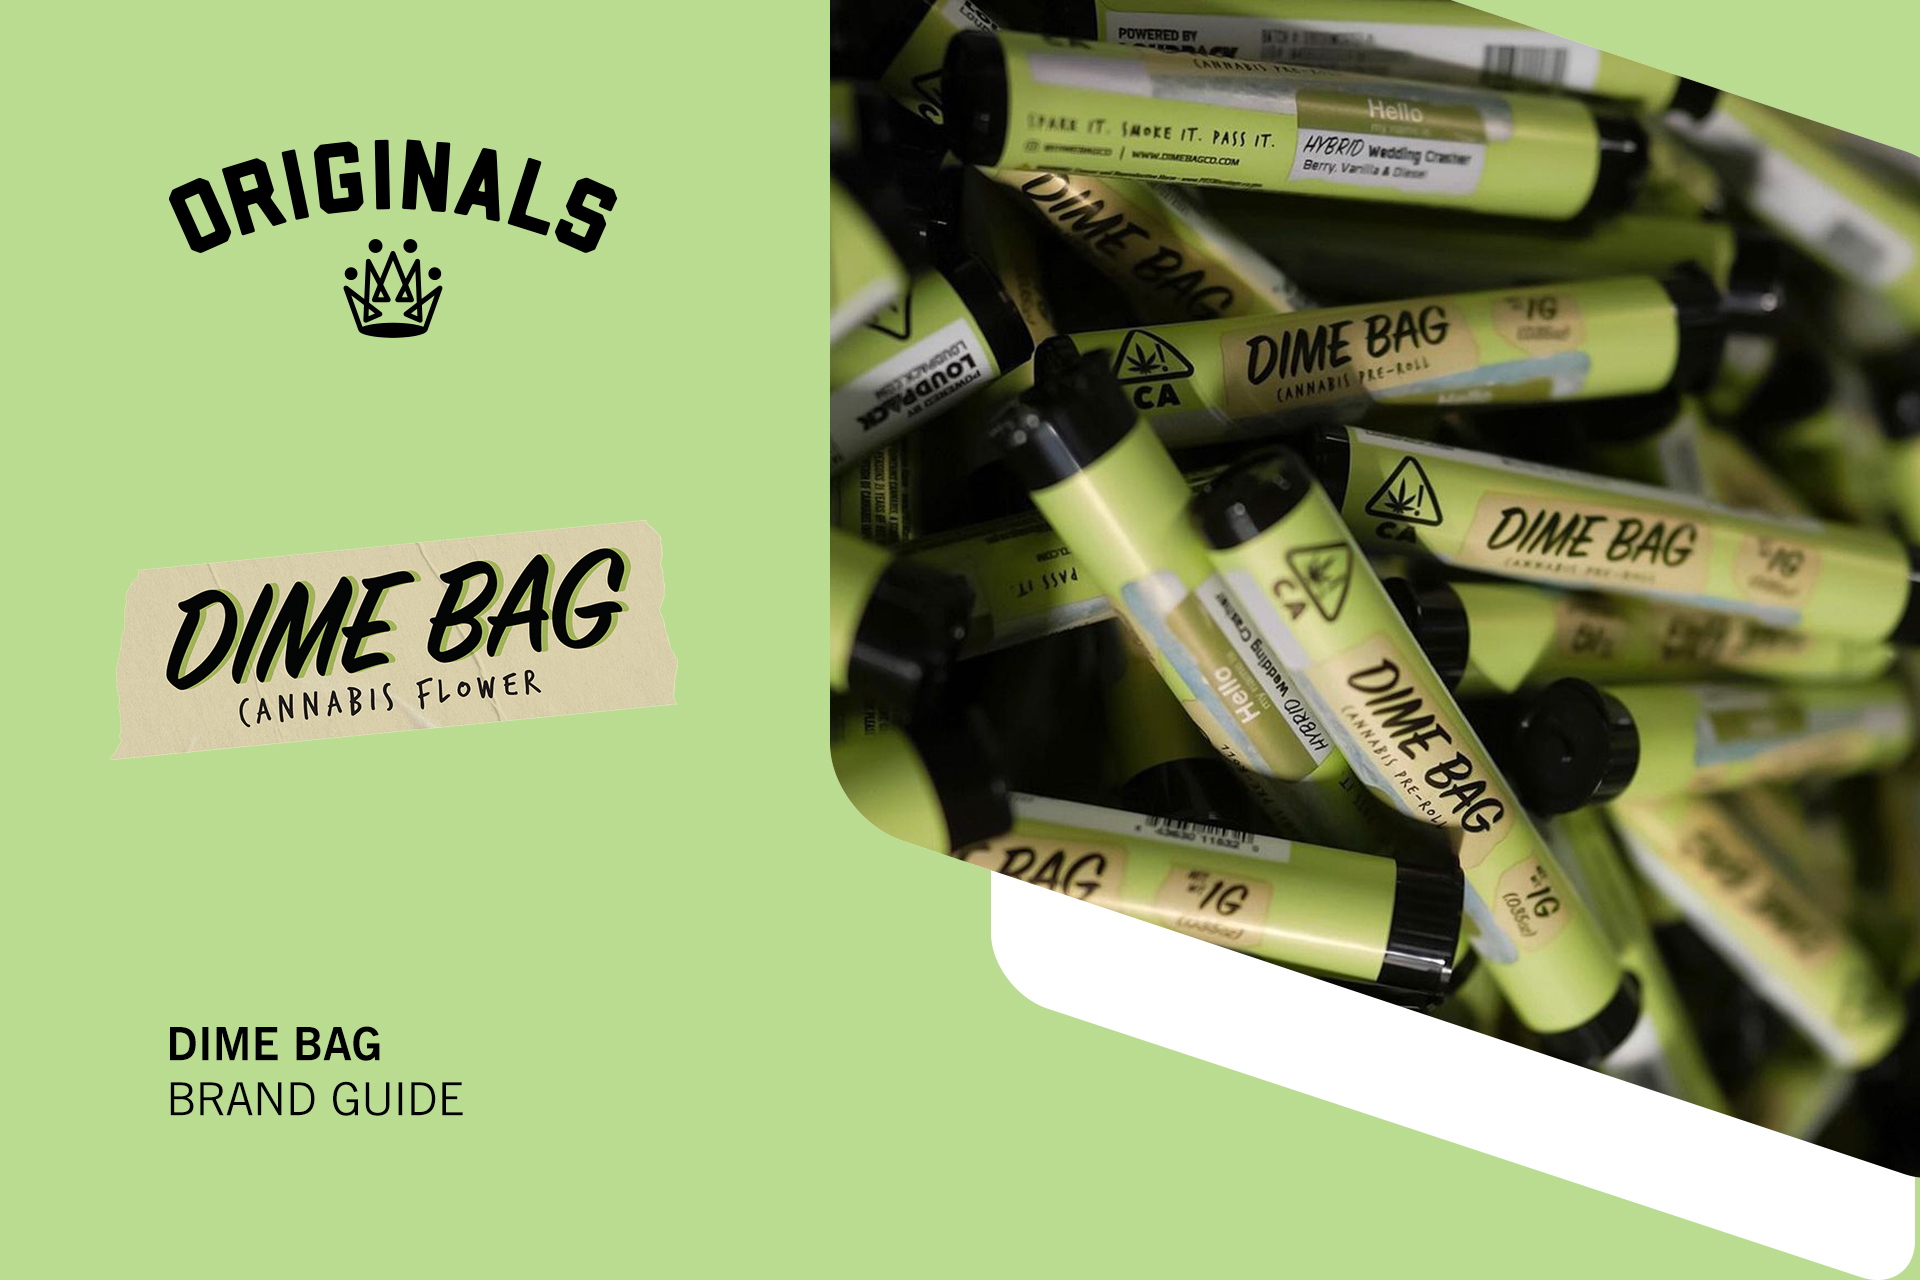 Dime Bag Brand Guide: High Quality Low-Cost Cannabis Products At Originals